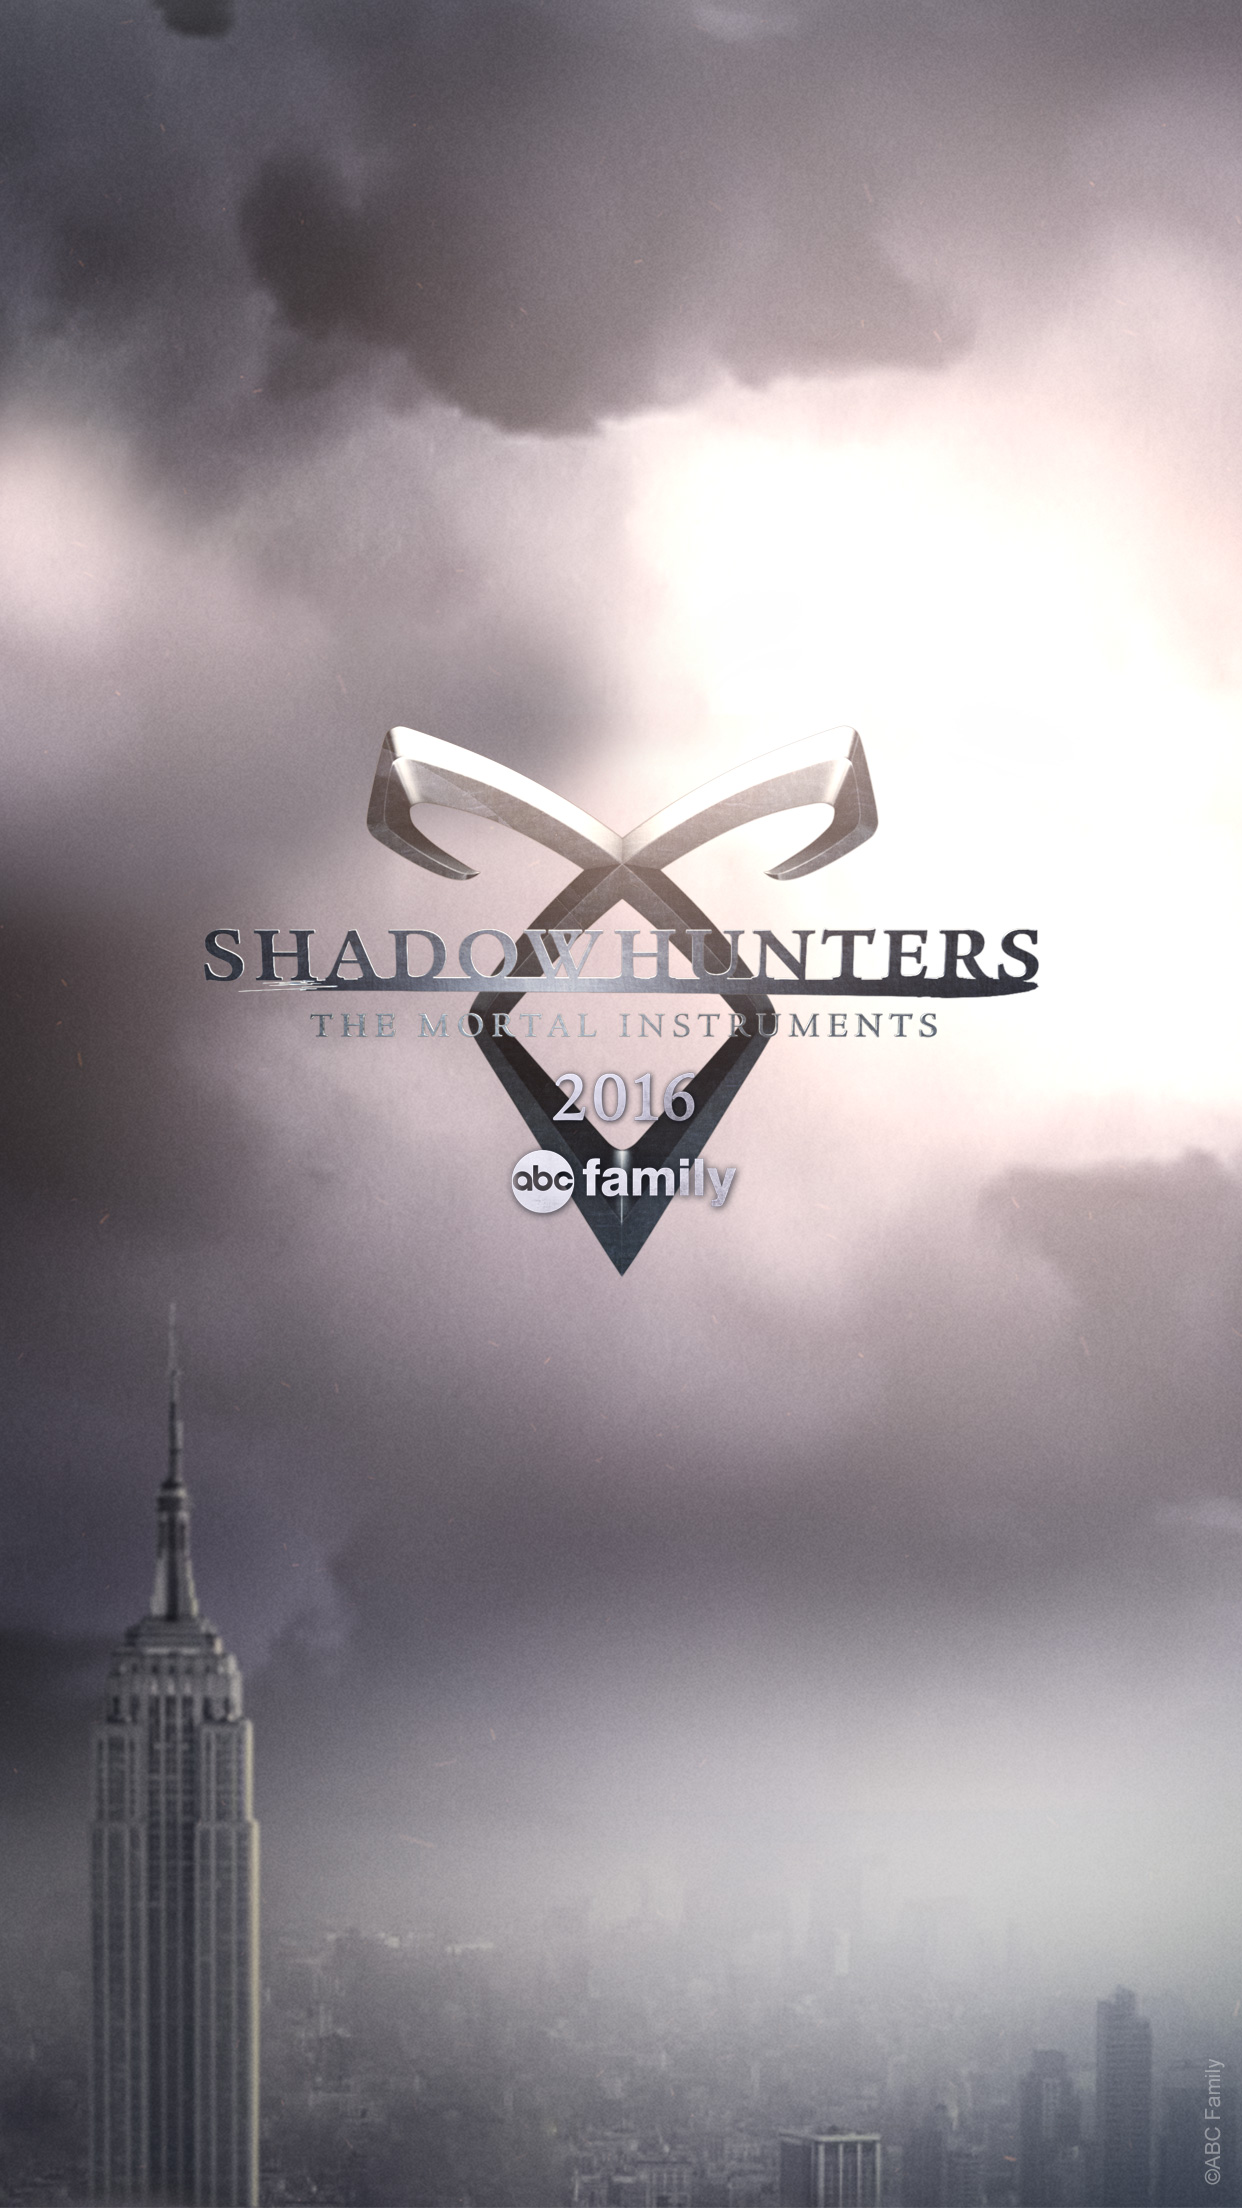 shadowhunters mobile backgrounds to rock your world - shadowhunters